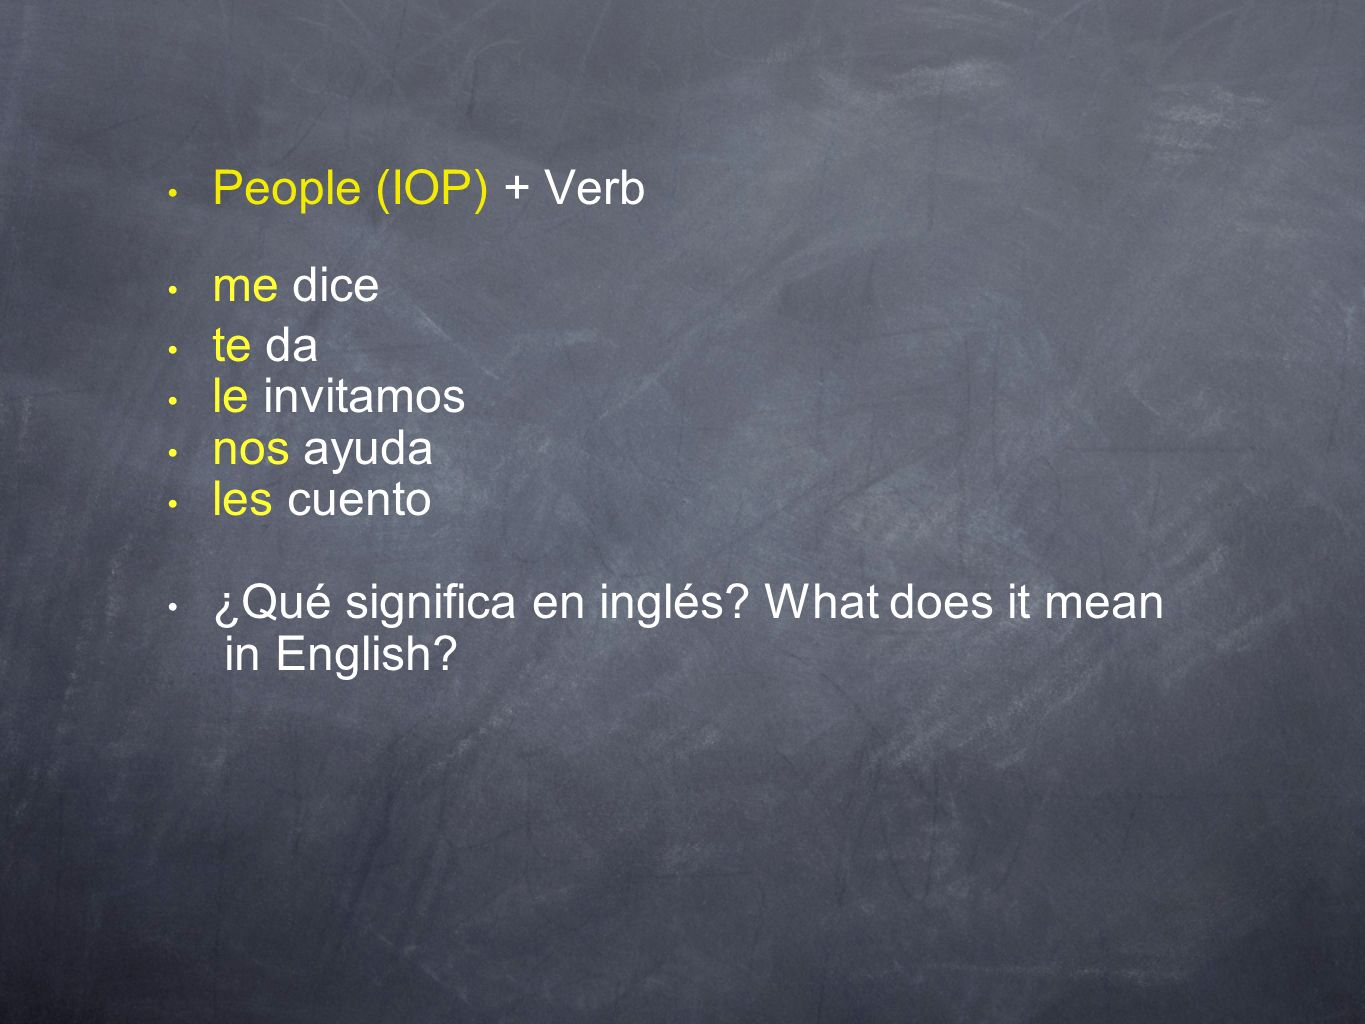 People (IOP) + Verb me dice. te da. le invitamos. nos ayuda. les cuento. ¿Qué significa en inglés What does it mean.